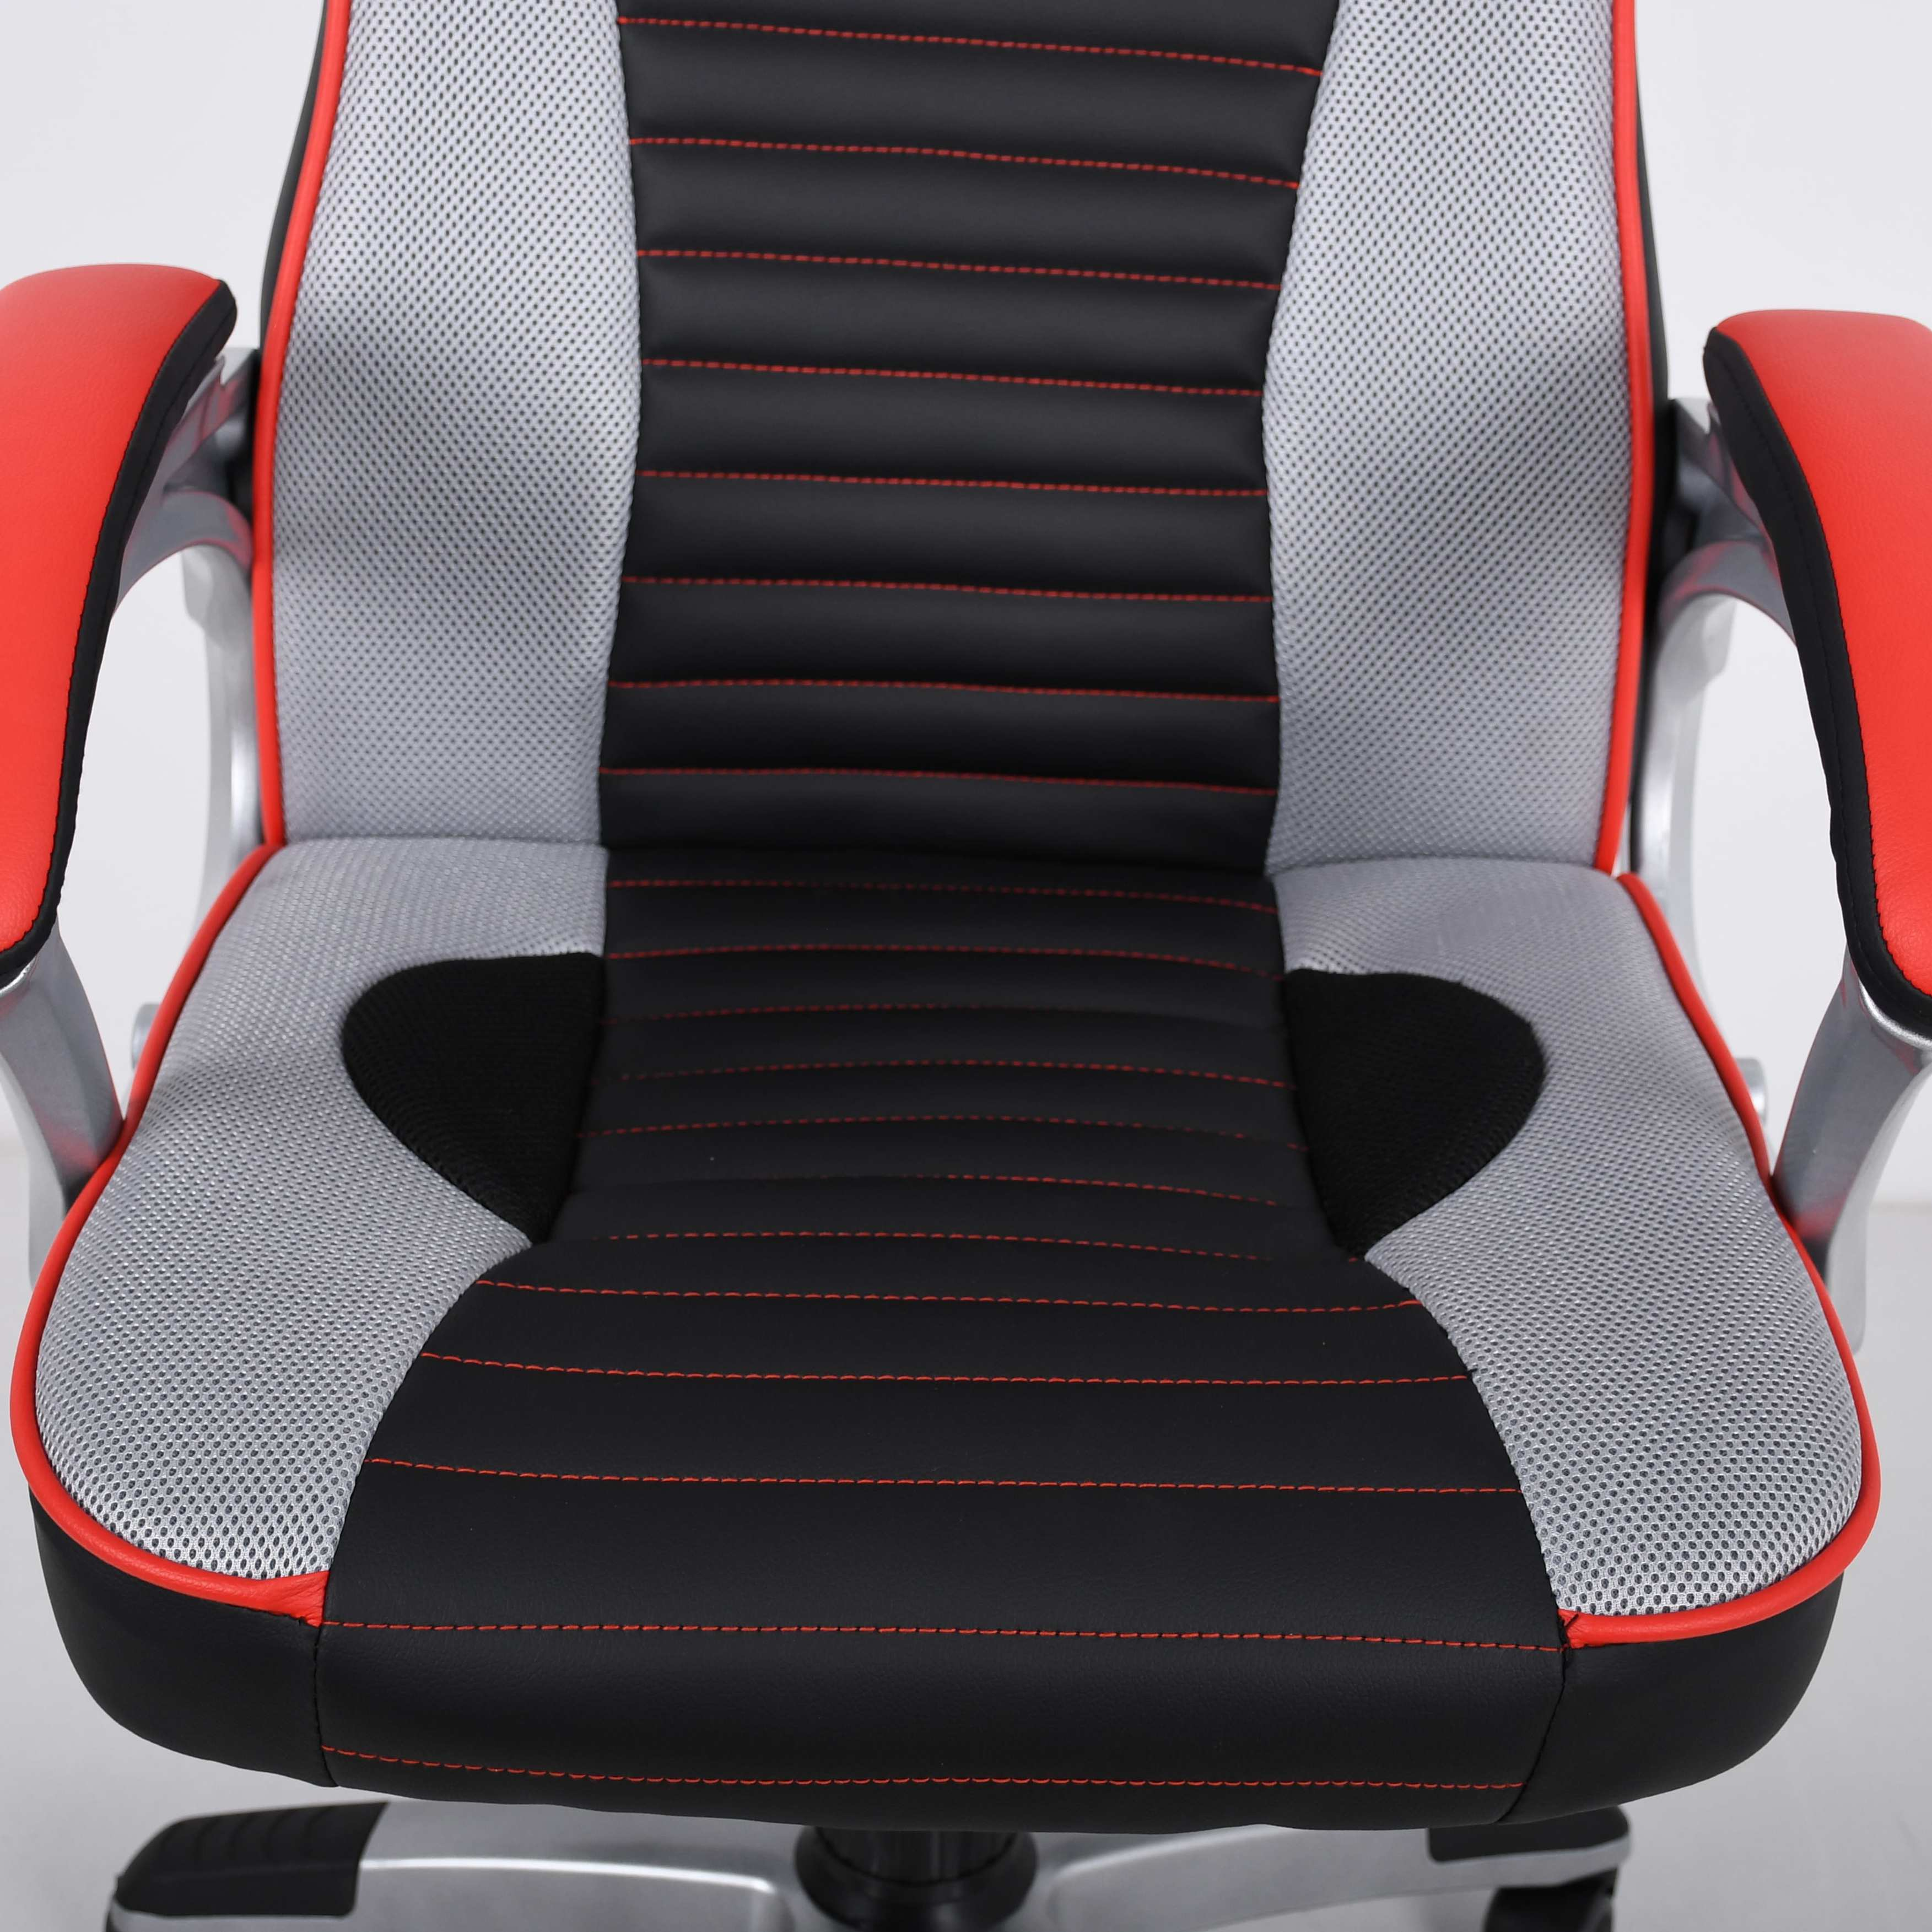 Wholesale zero gravity adjustable colorful design office chair red massage pc computer racing office gaming chair